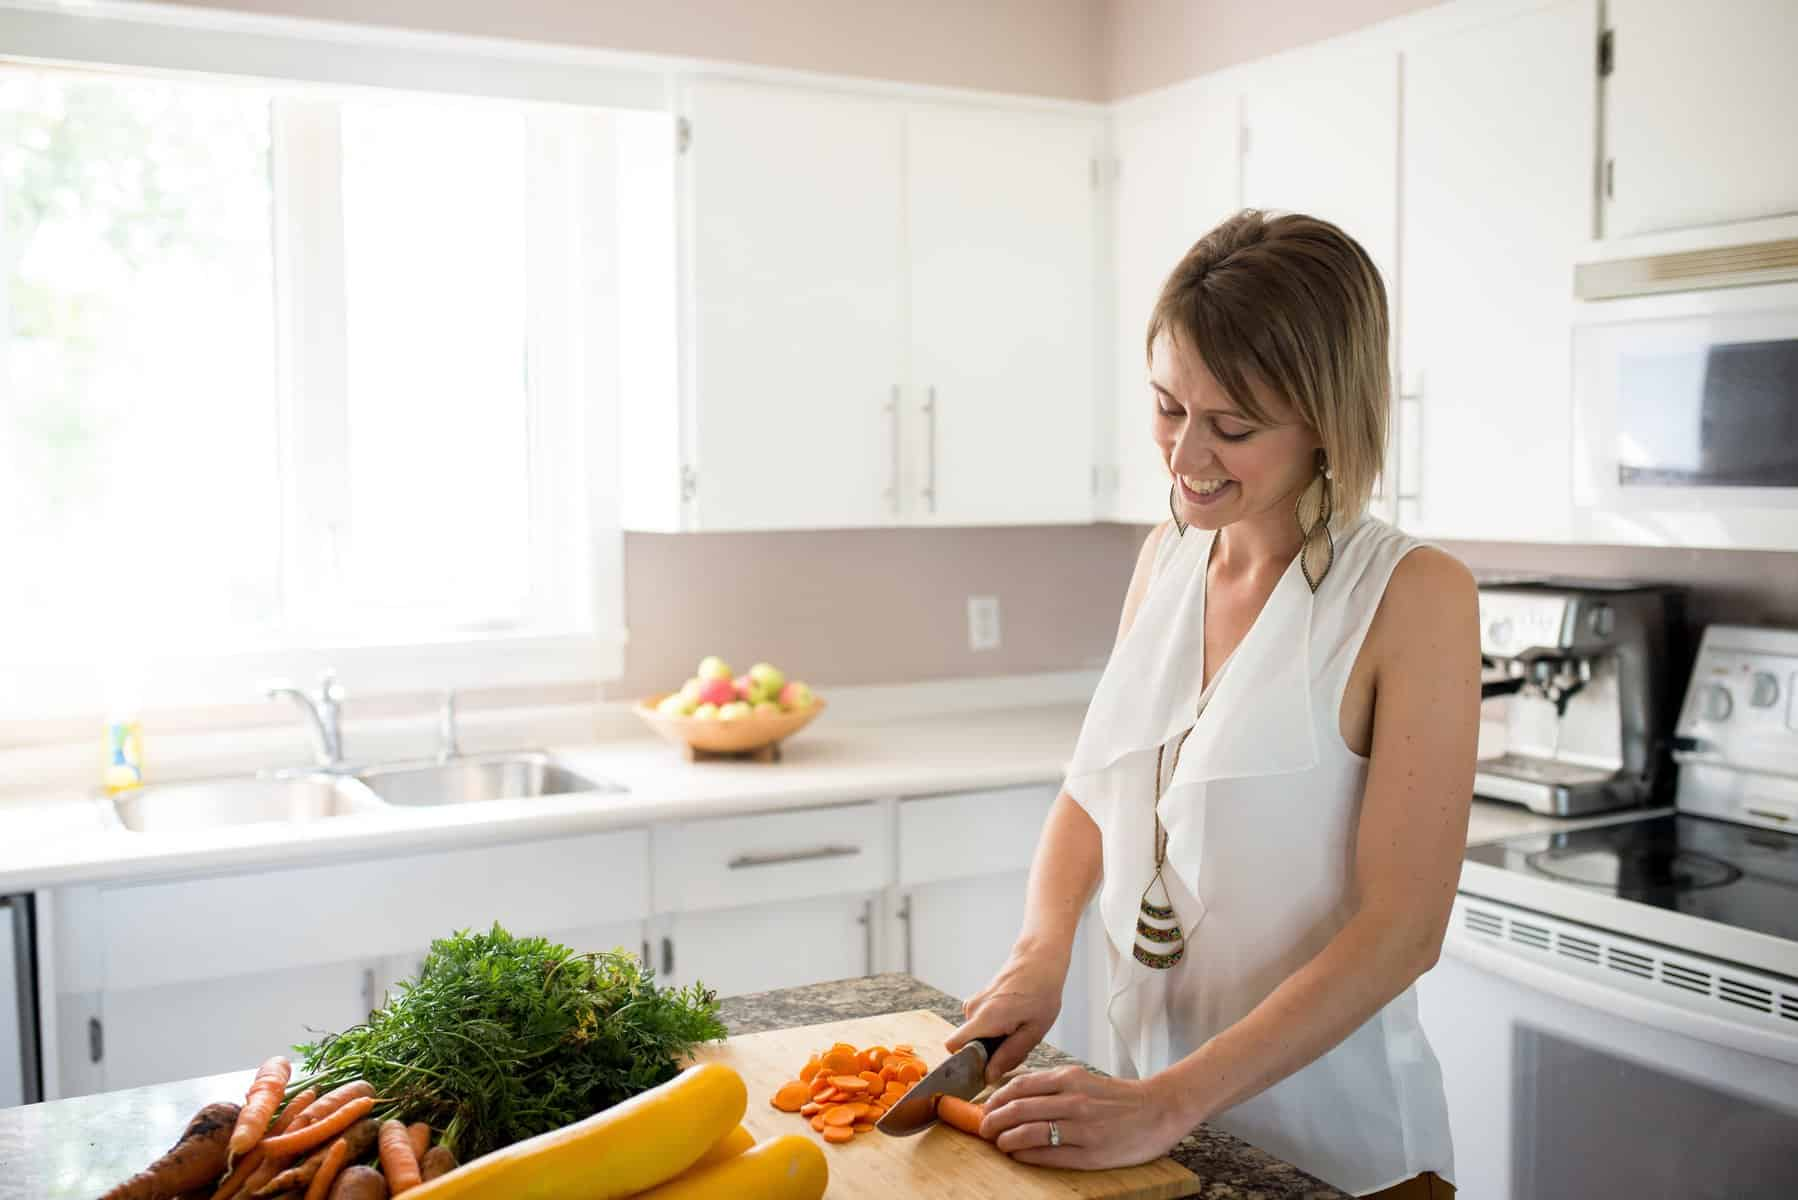 Jessica Penner, Registered Dietitian, chopping veggies in a kitchen